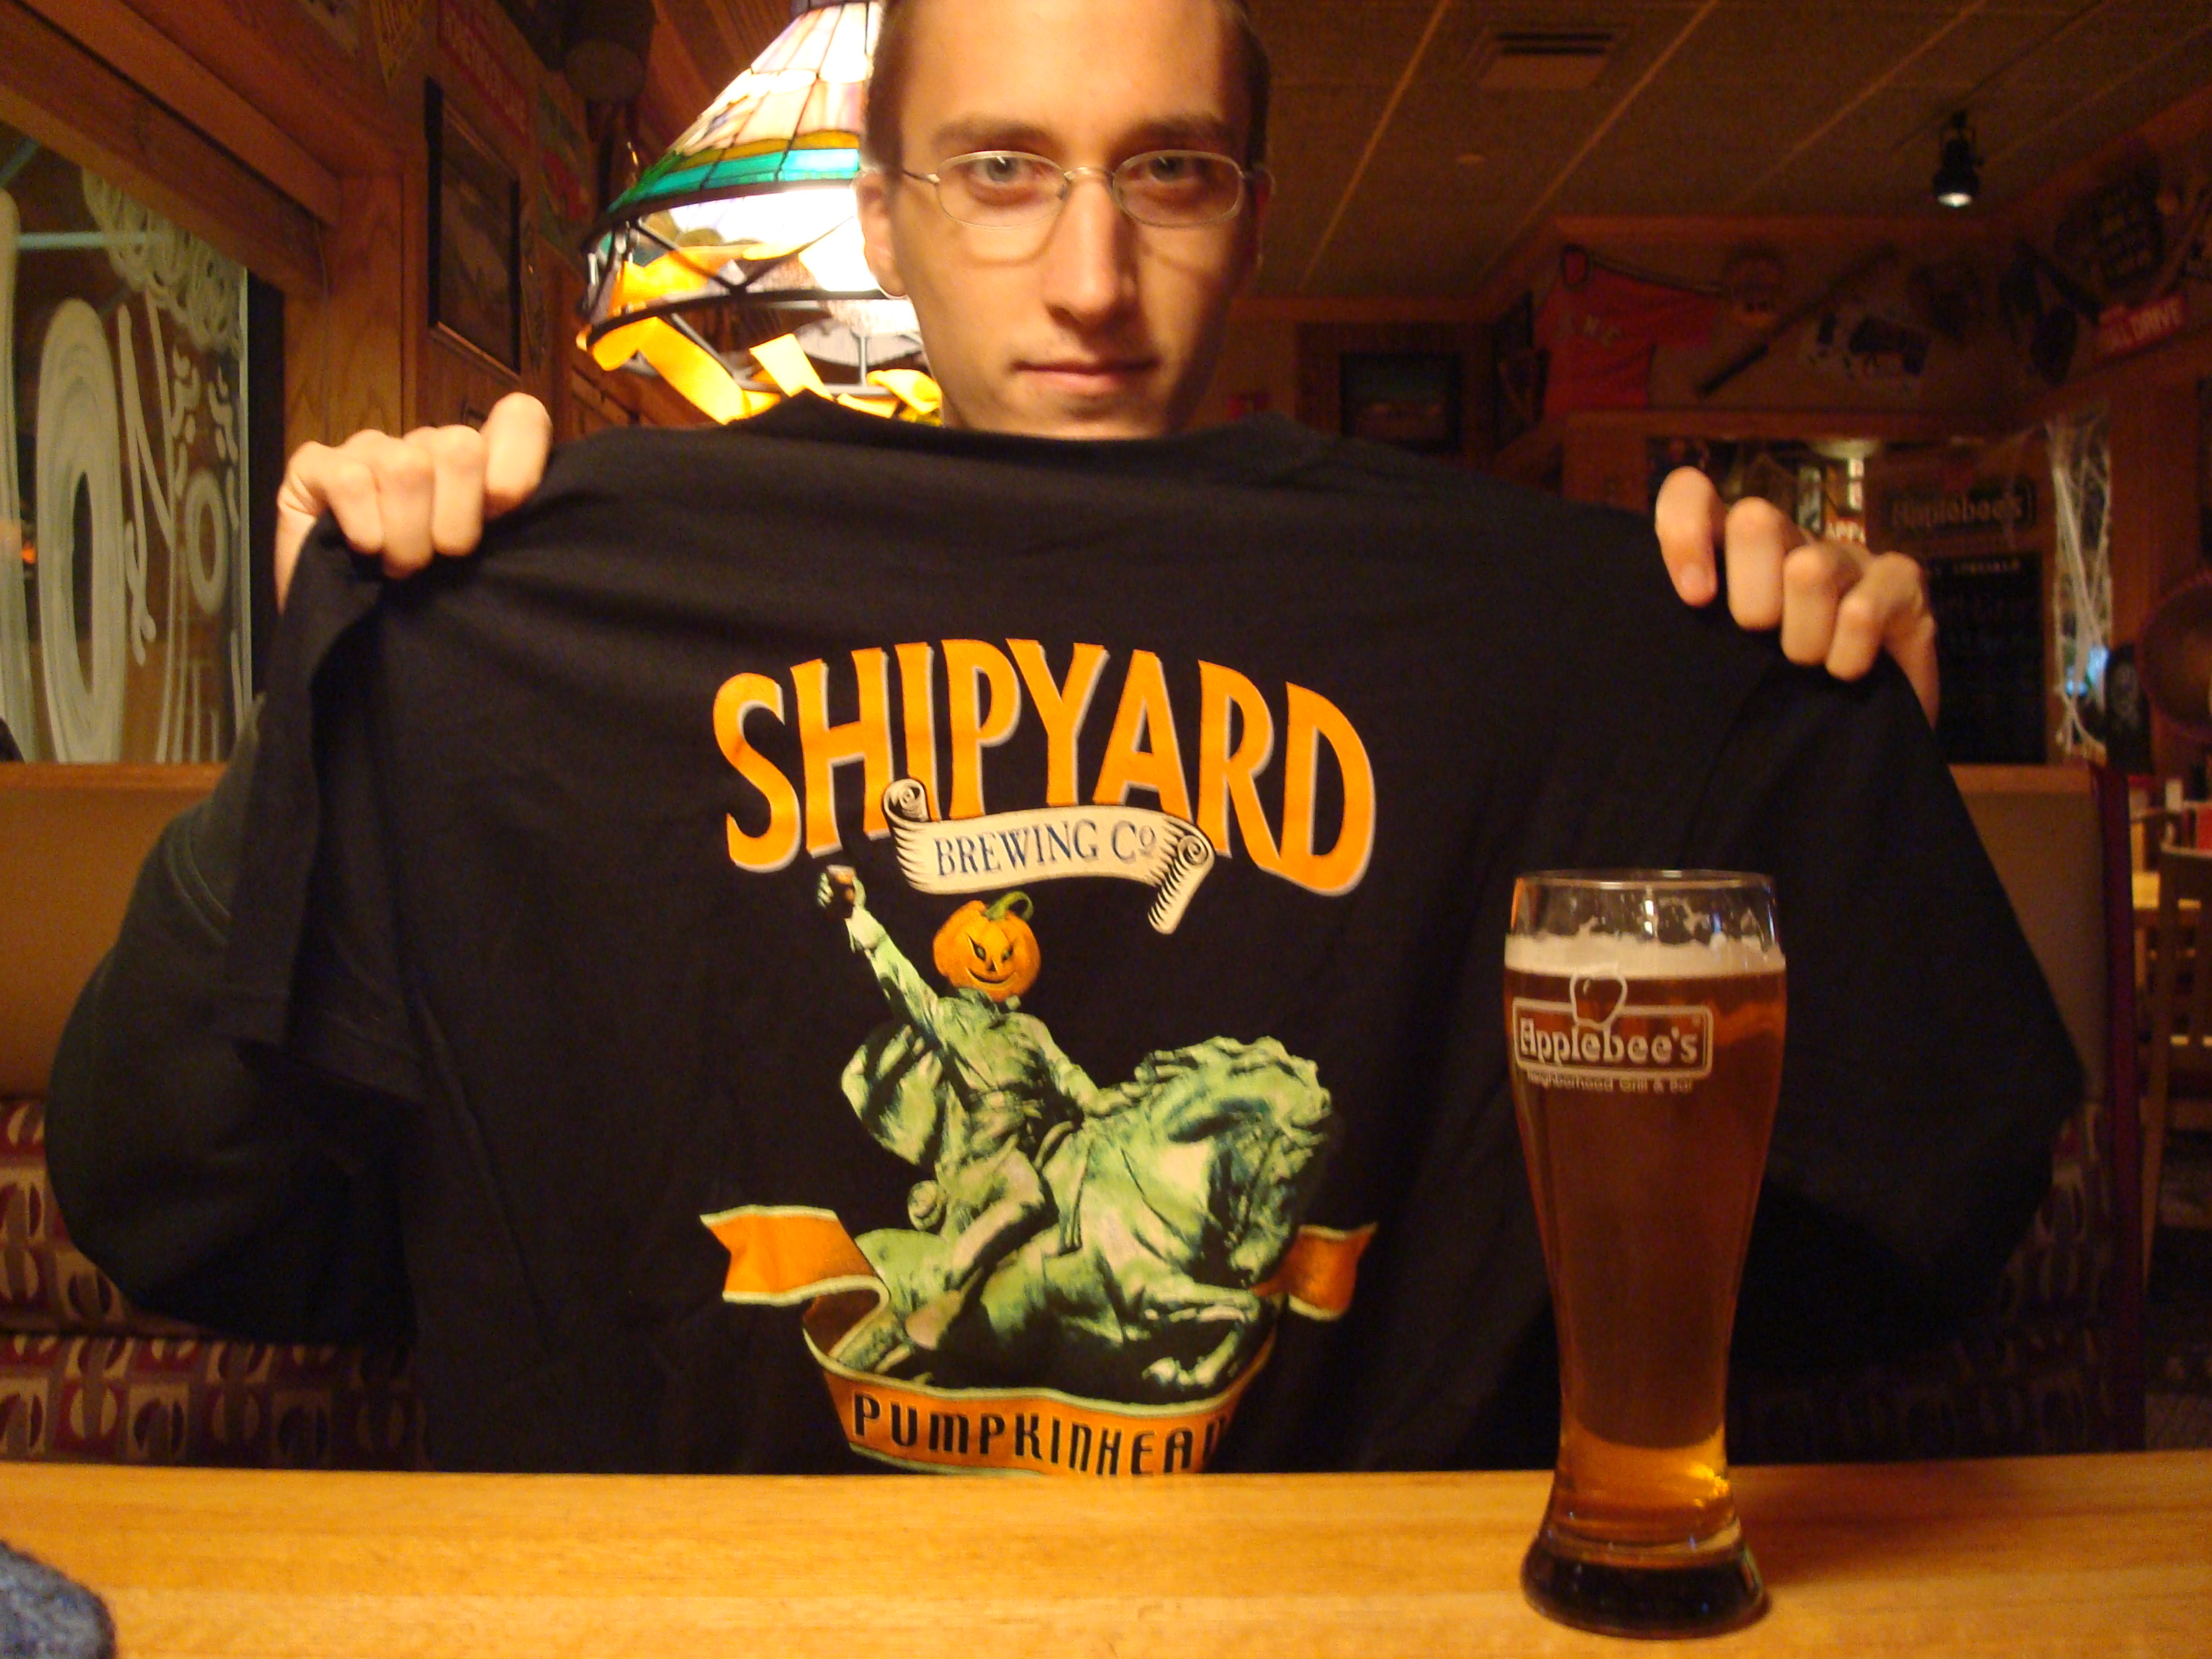 Applebee's Keene NH :: Samantha and I went to Applebees for dinner and the waiter guy told me if I ordered a pumpkinhead shipyard beer, i would get a free pumpkinhead shirt!! i could not pass this deal up.